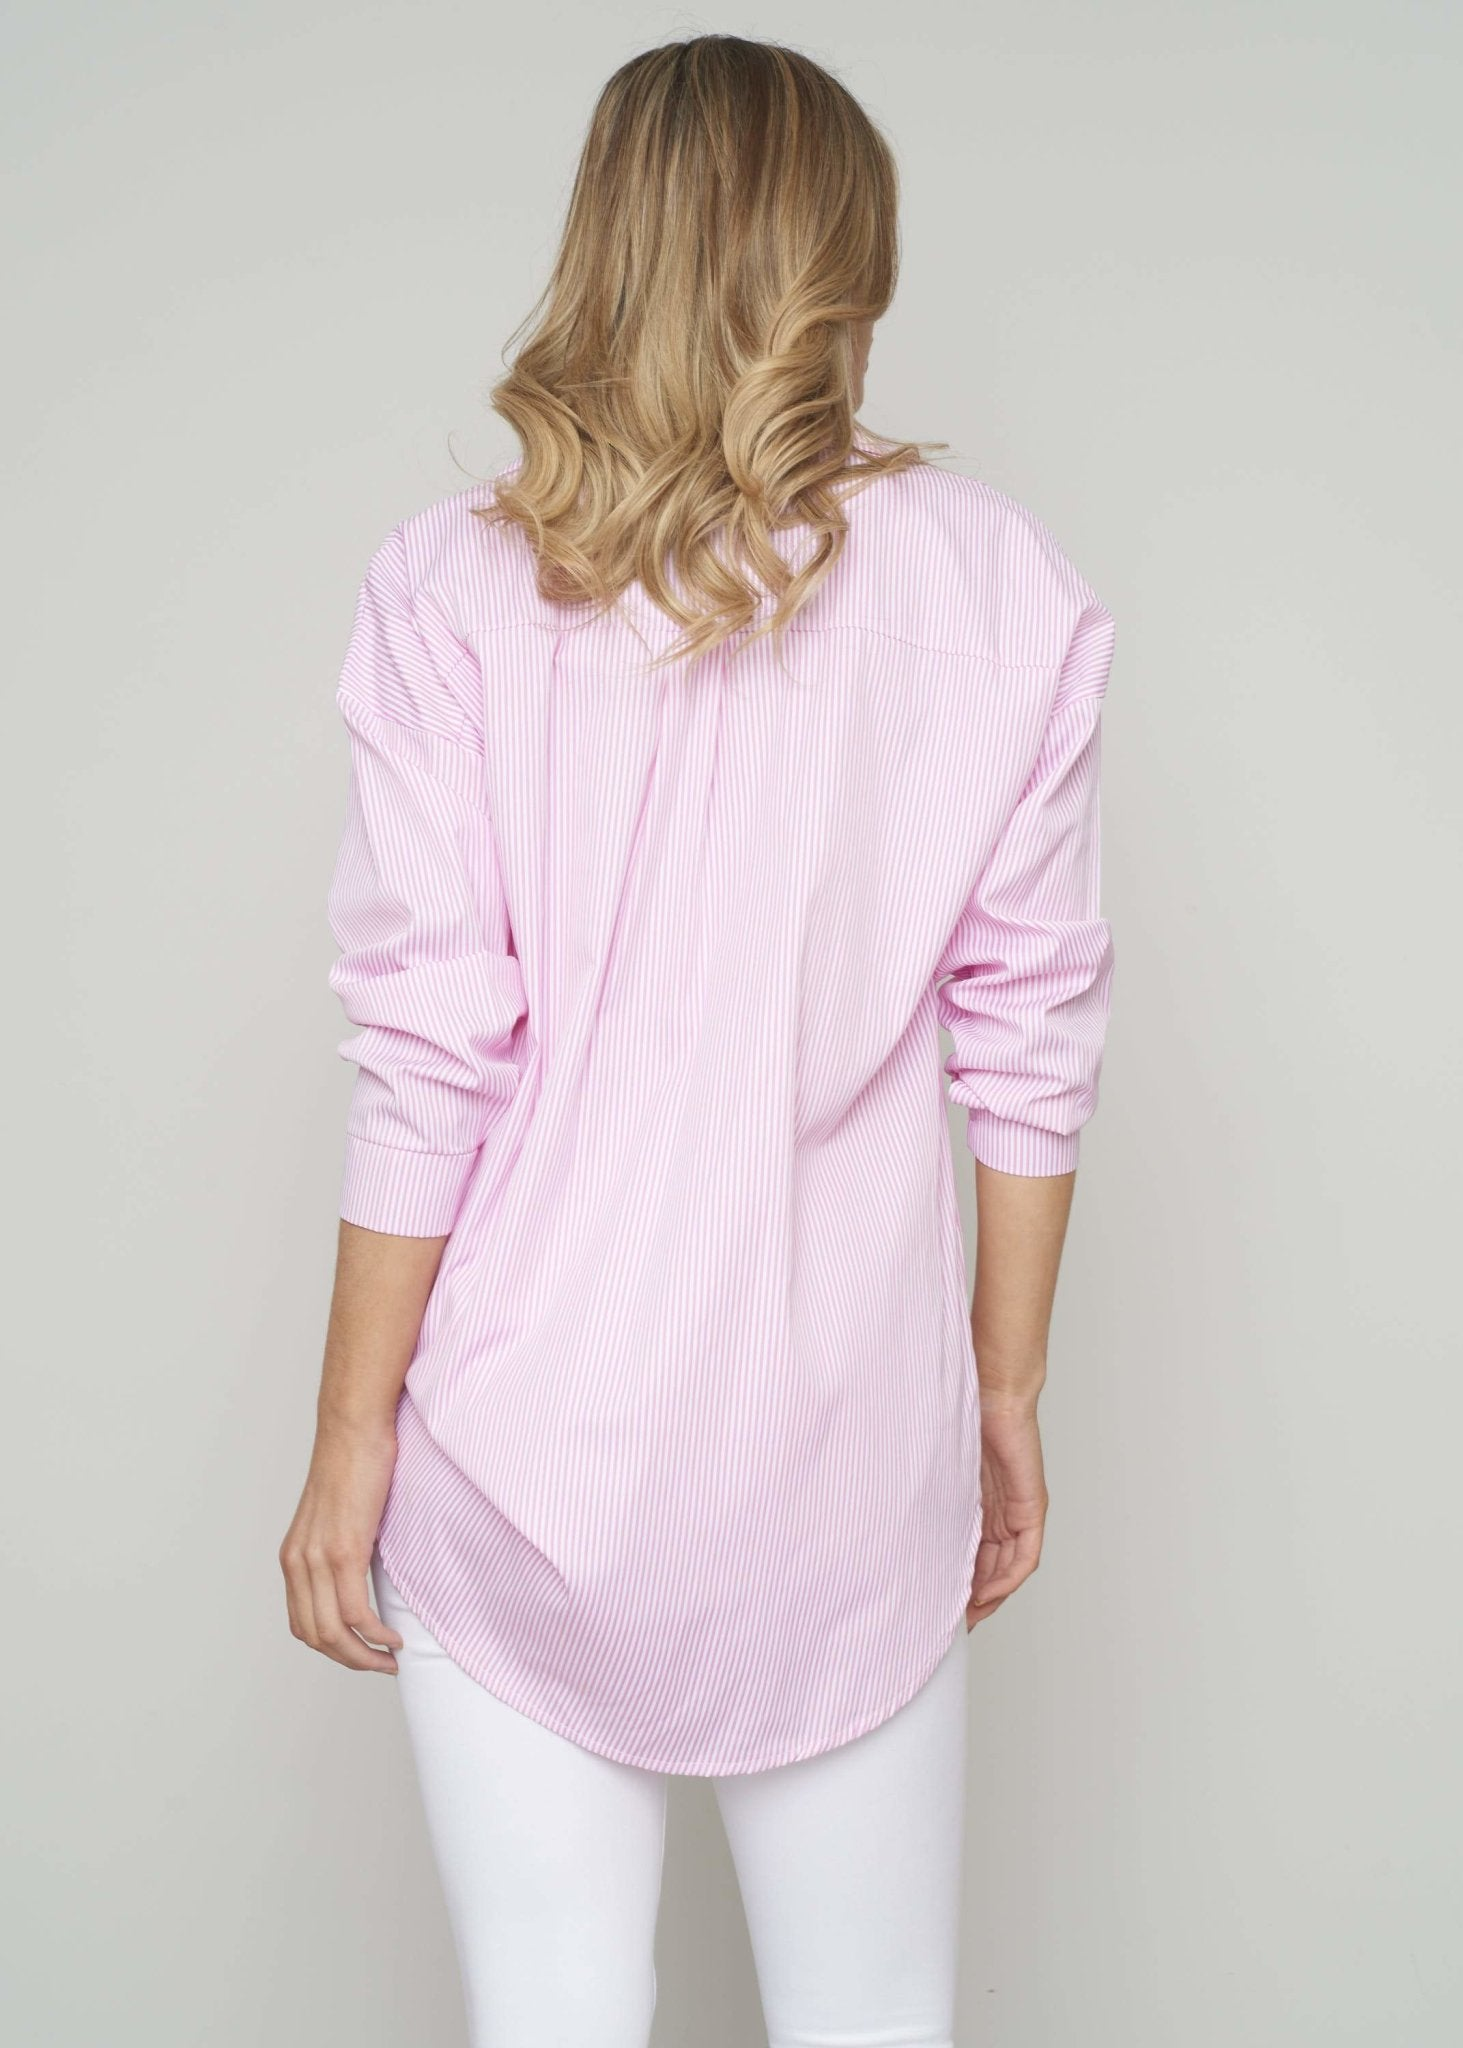 Priya Longline Pinstripe Shirt In Pink - The Walk in Wardrobe